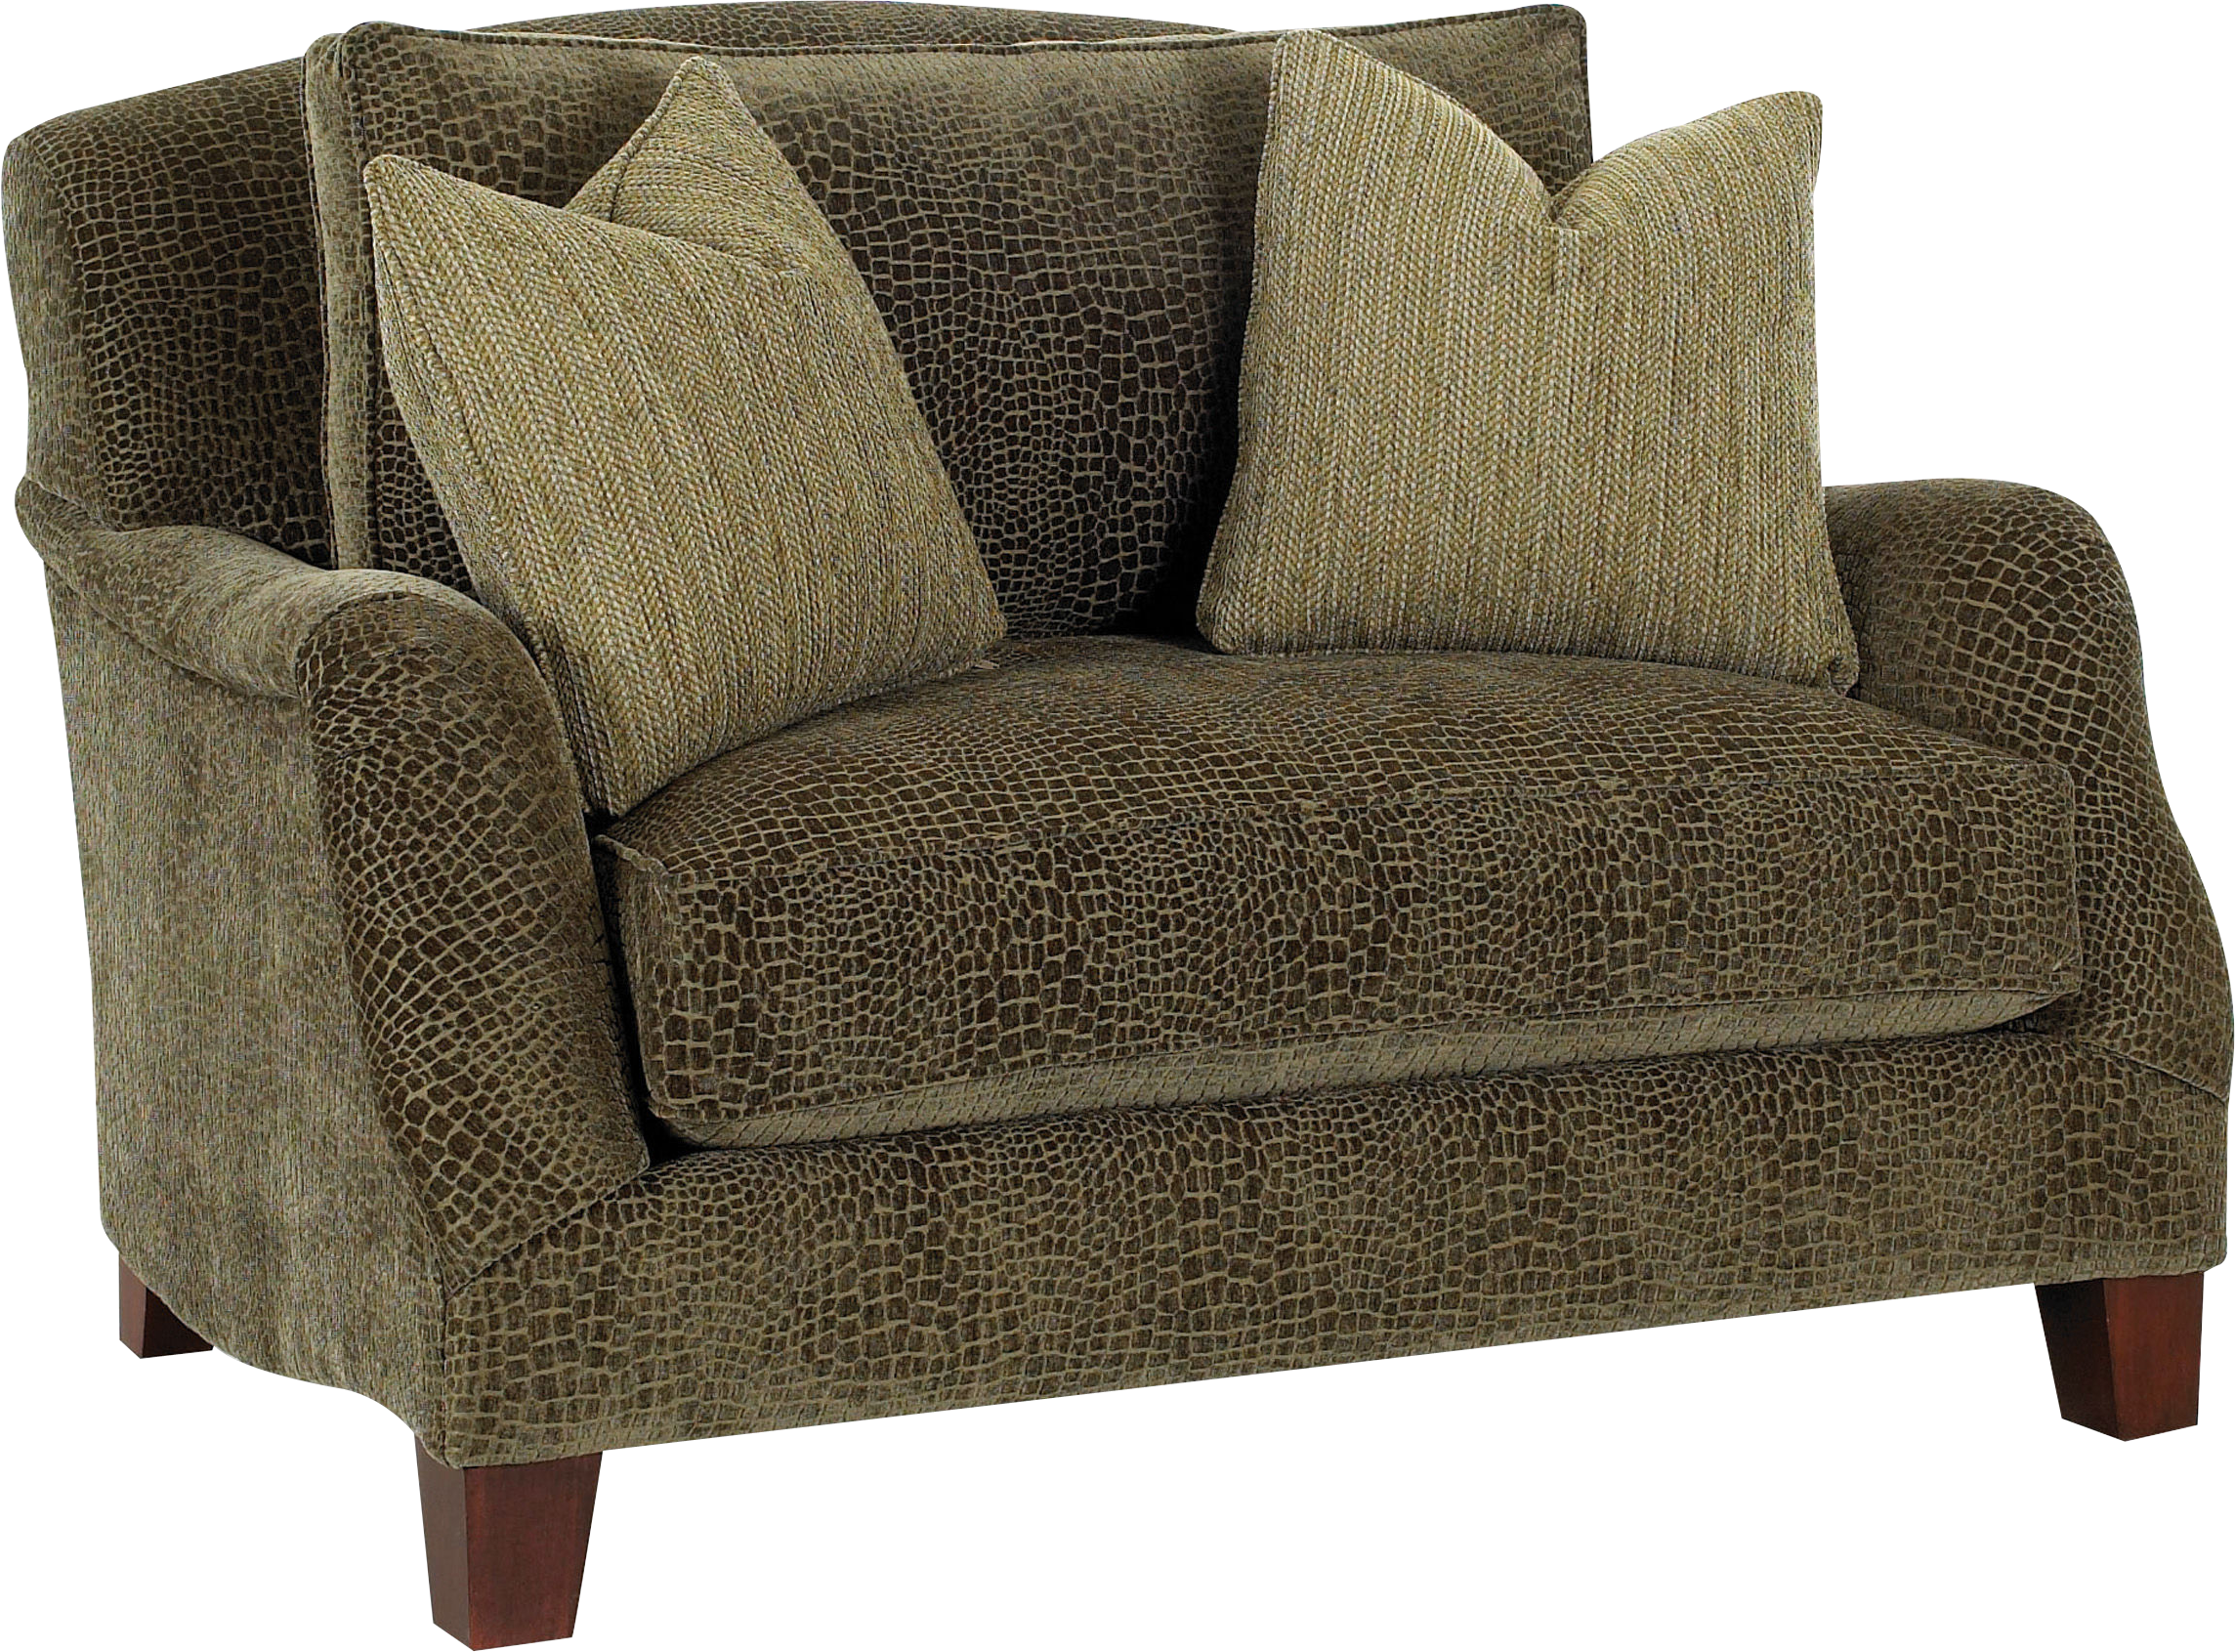 Furniture clipart love seat. Sofa png images free